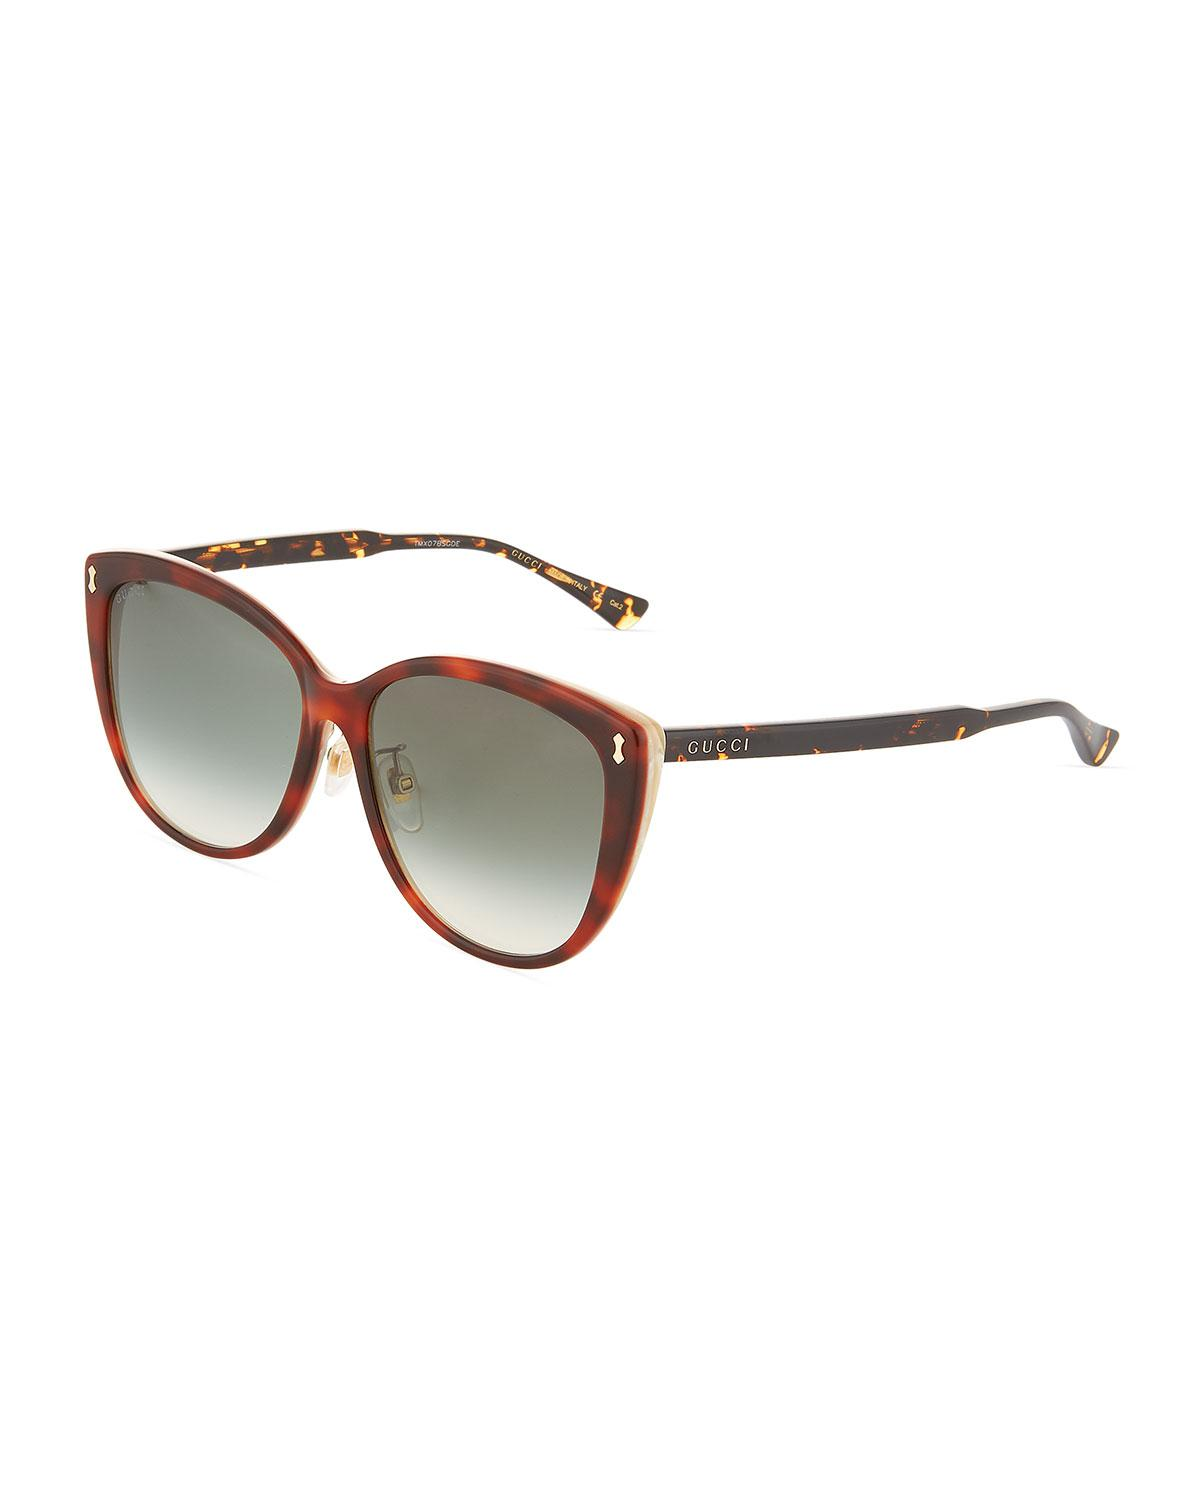 47307a7dd33 Gucci - Green Cat-eye Tortoiseshell Acetate Sunglasses - Gradient Lenses -  Lyst. View fullscreen